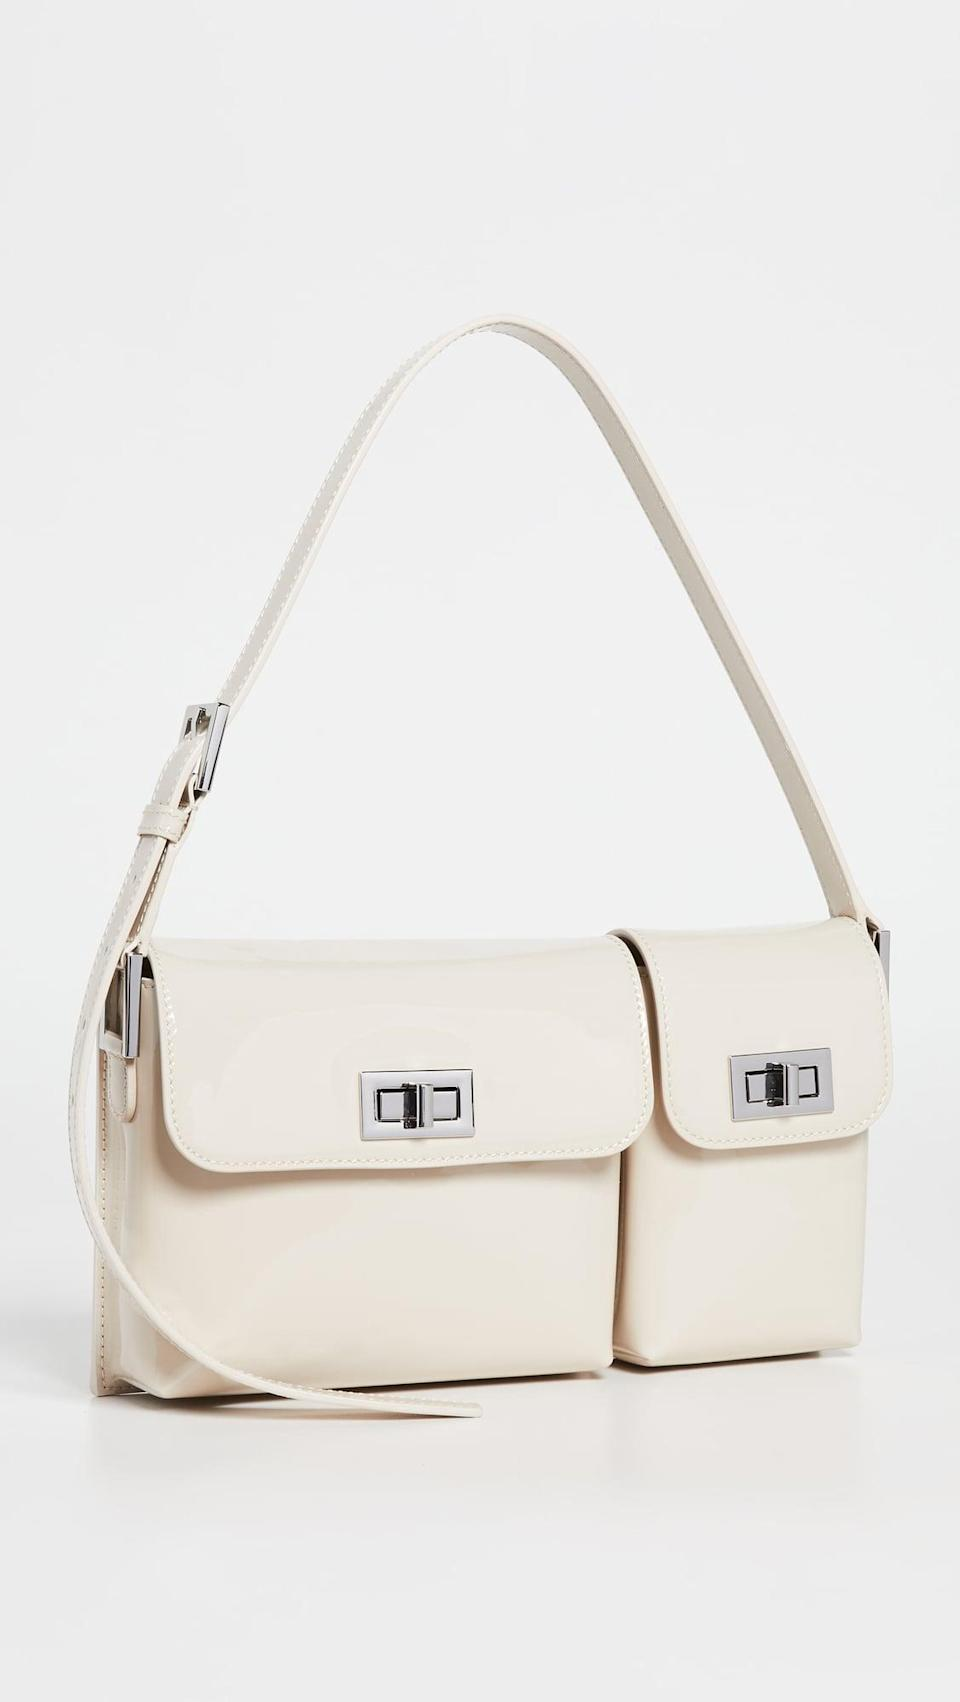 <p>The chic design of the <span>BY FAR Billy Bag</span> ($564) will have all your friends asking where it's from. We can't help but love the two-compartment look.</p>